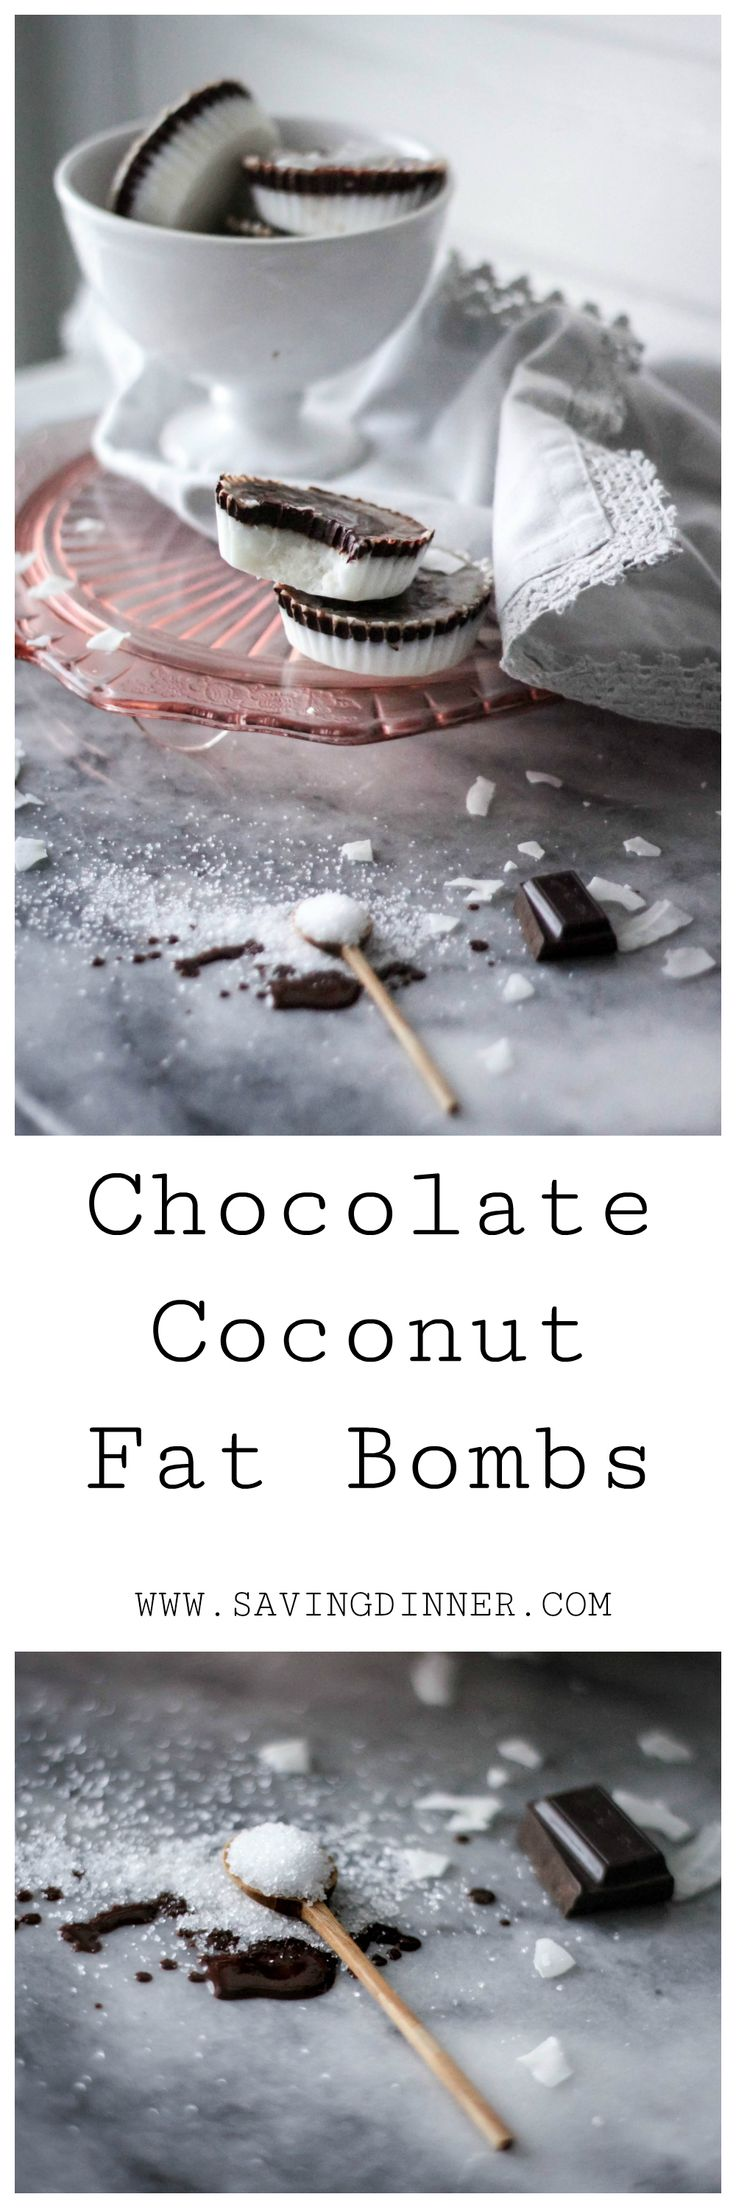 Keto and Paleo friendly fat bombs! Chocolate Coconut Fat Bombs that are full of coconut oil, coconut butter, all that good fat and diary-free, refined sugar free! A delicious and easy recipe for a treat or snack!